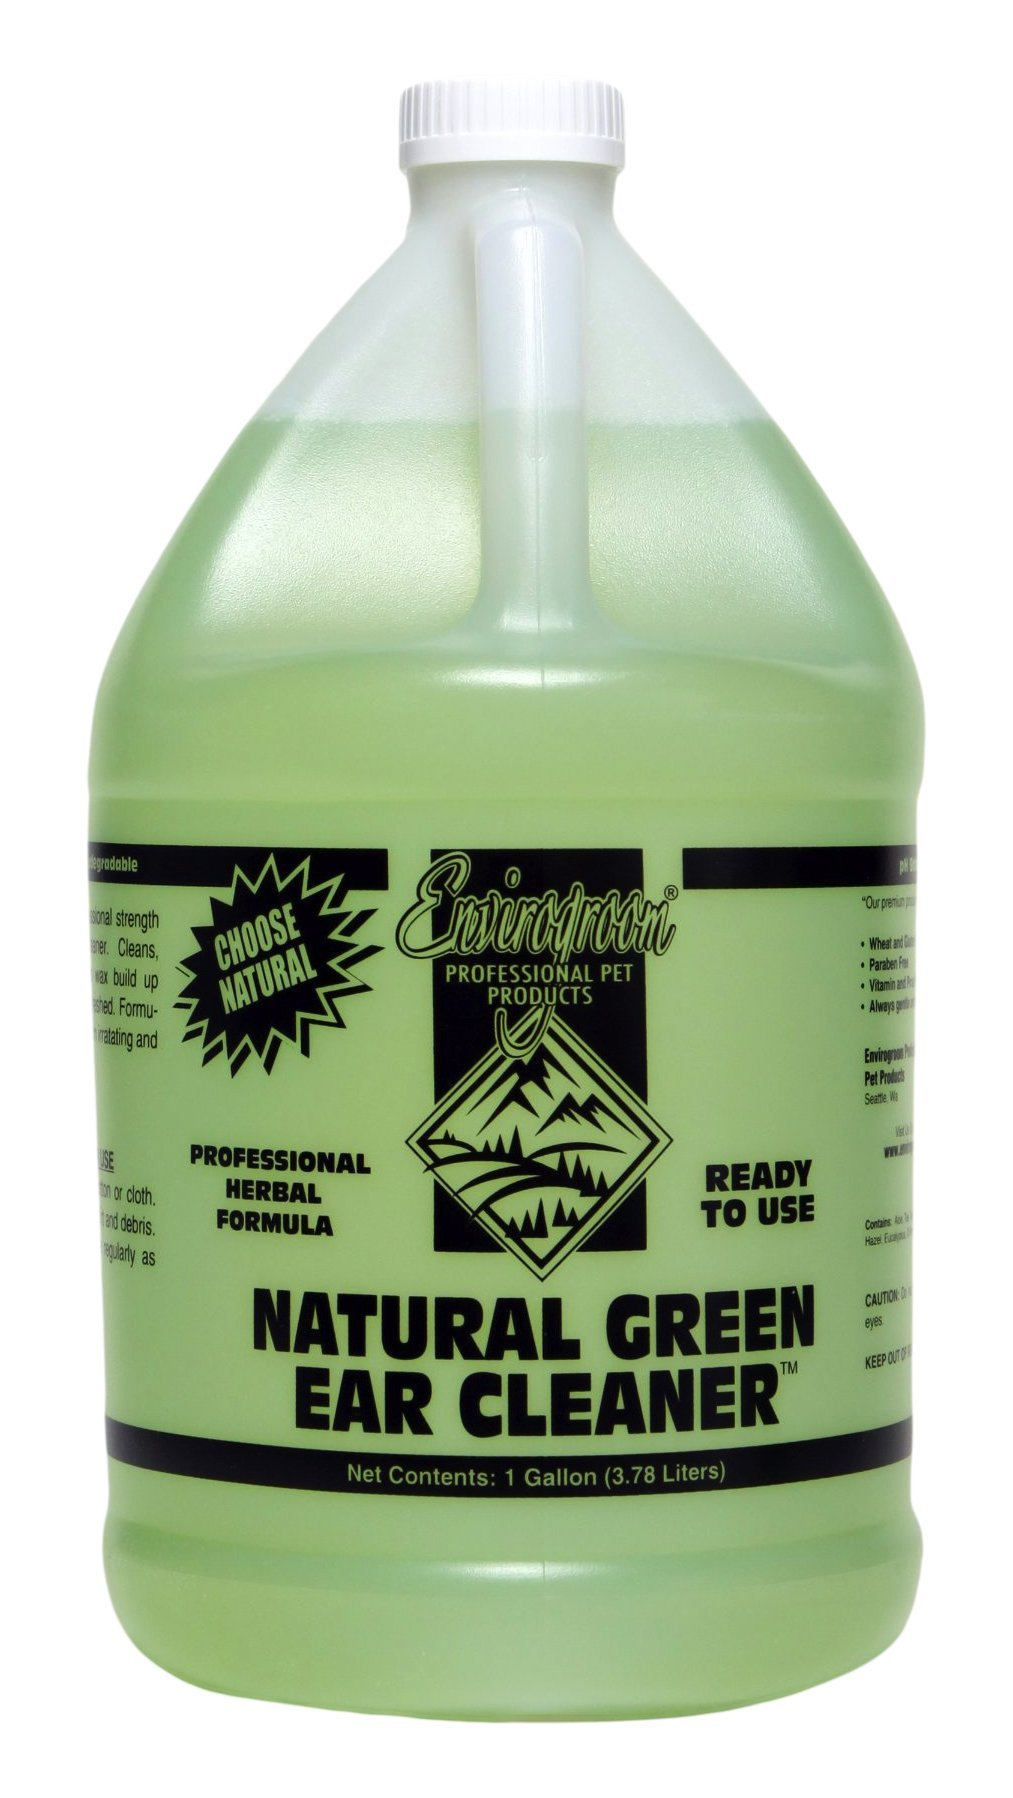 Envirogroom Natural Green Ear Cleaner, Ready-to-Use, Gallon by Envirogroom